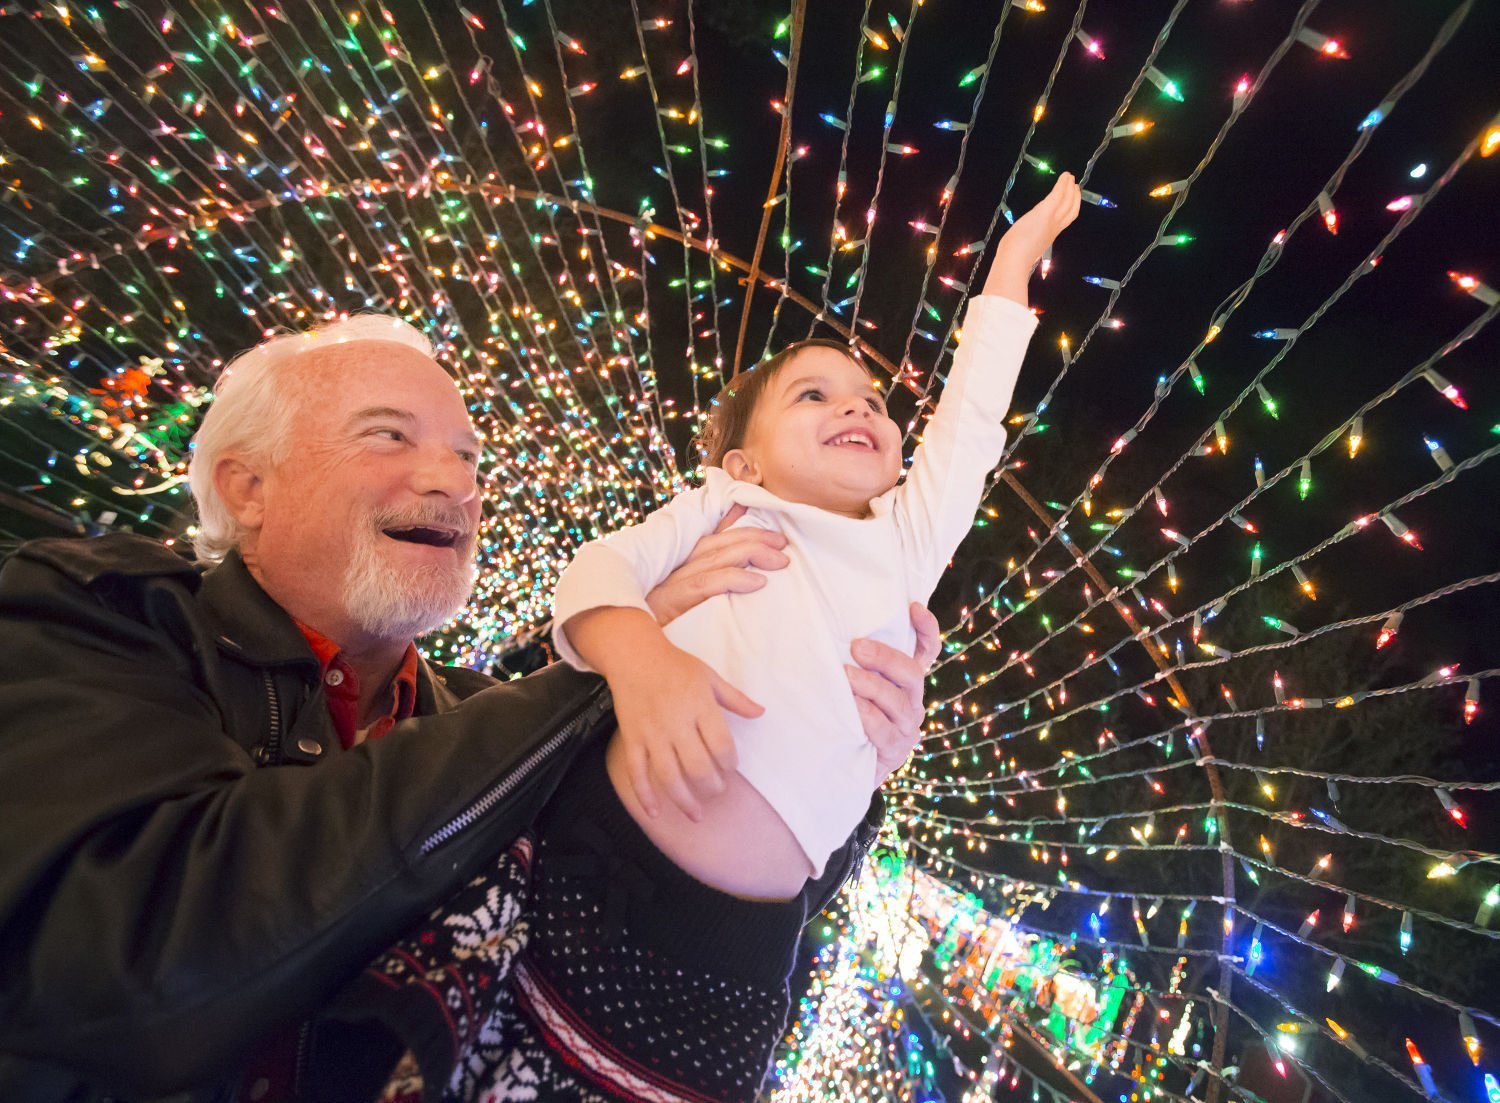 Photos: Dickinson Festival of Lights | In Focus | The Daily News